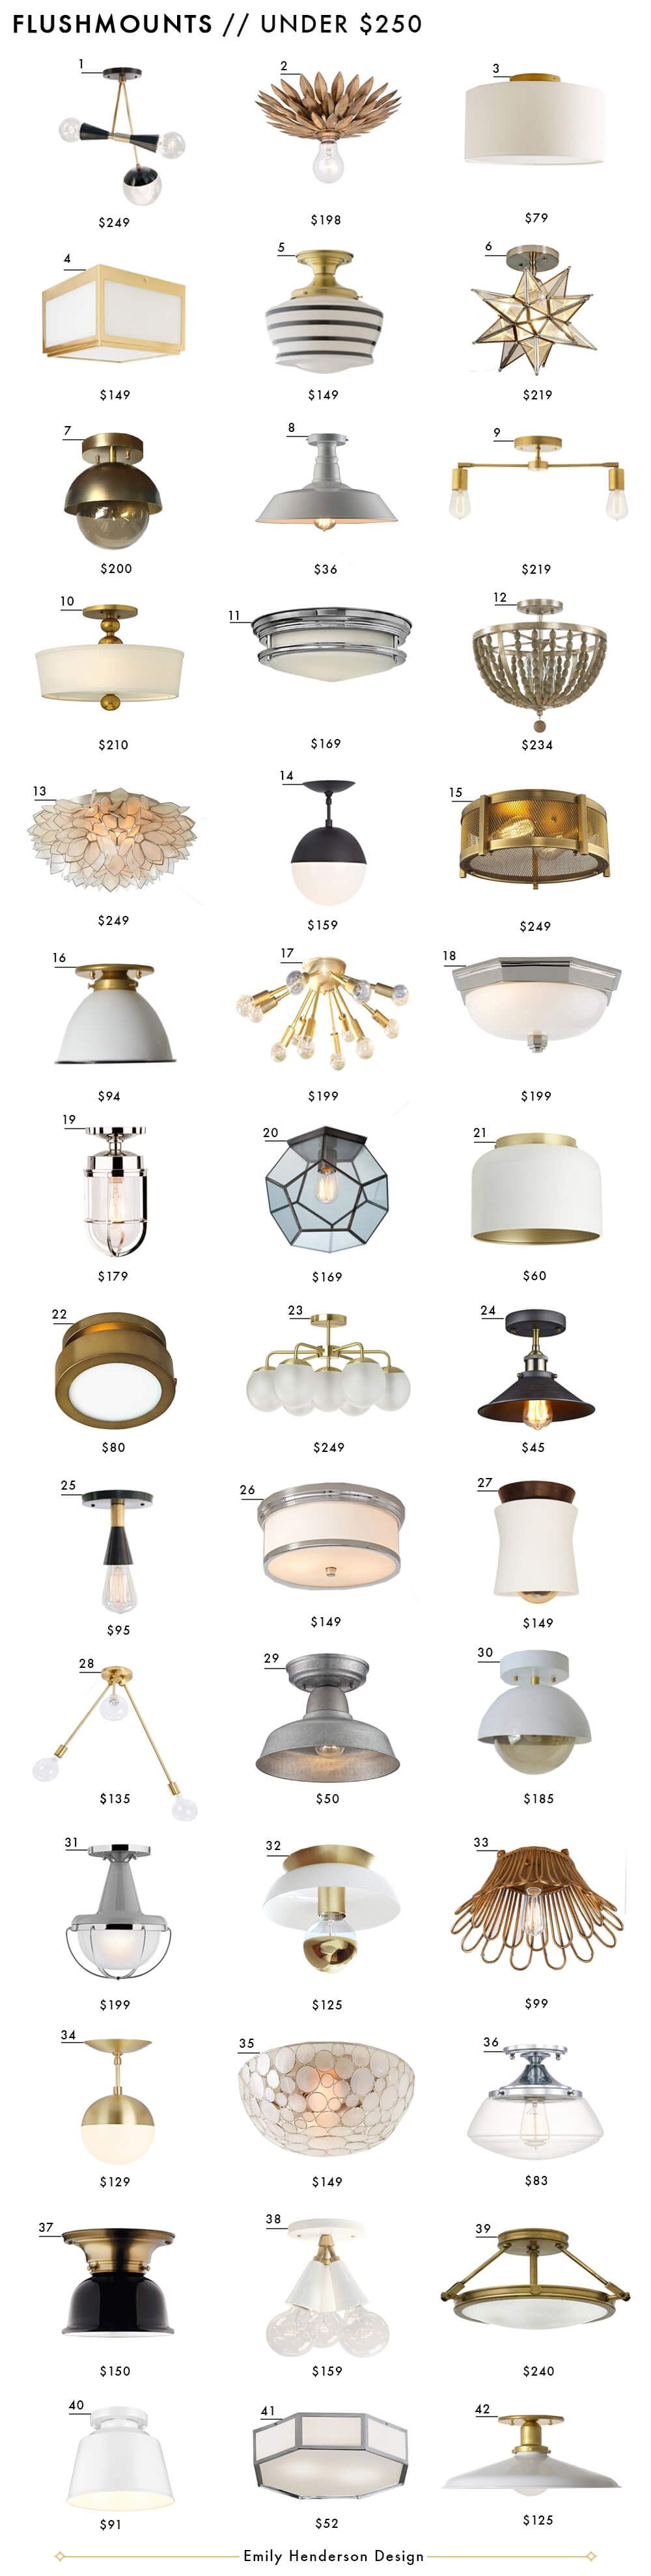 Bathroom Lighting Fixtures Under $100 affordable flushmount (and semi-flushmount) roundup - under $250